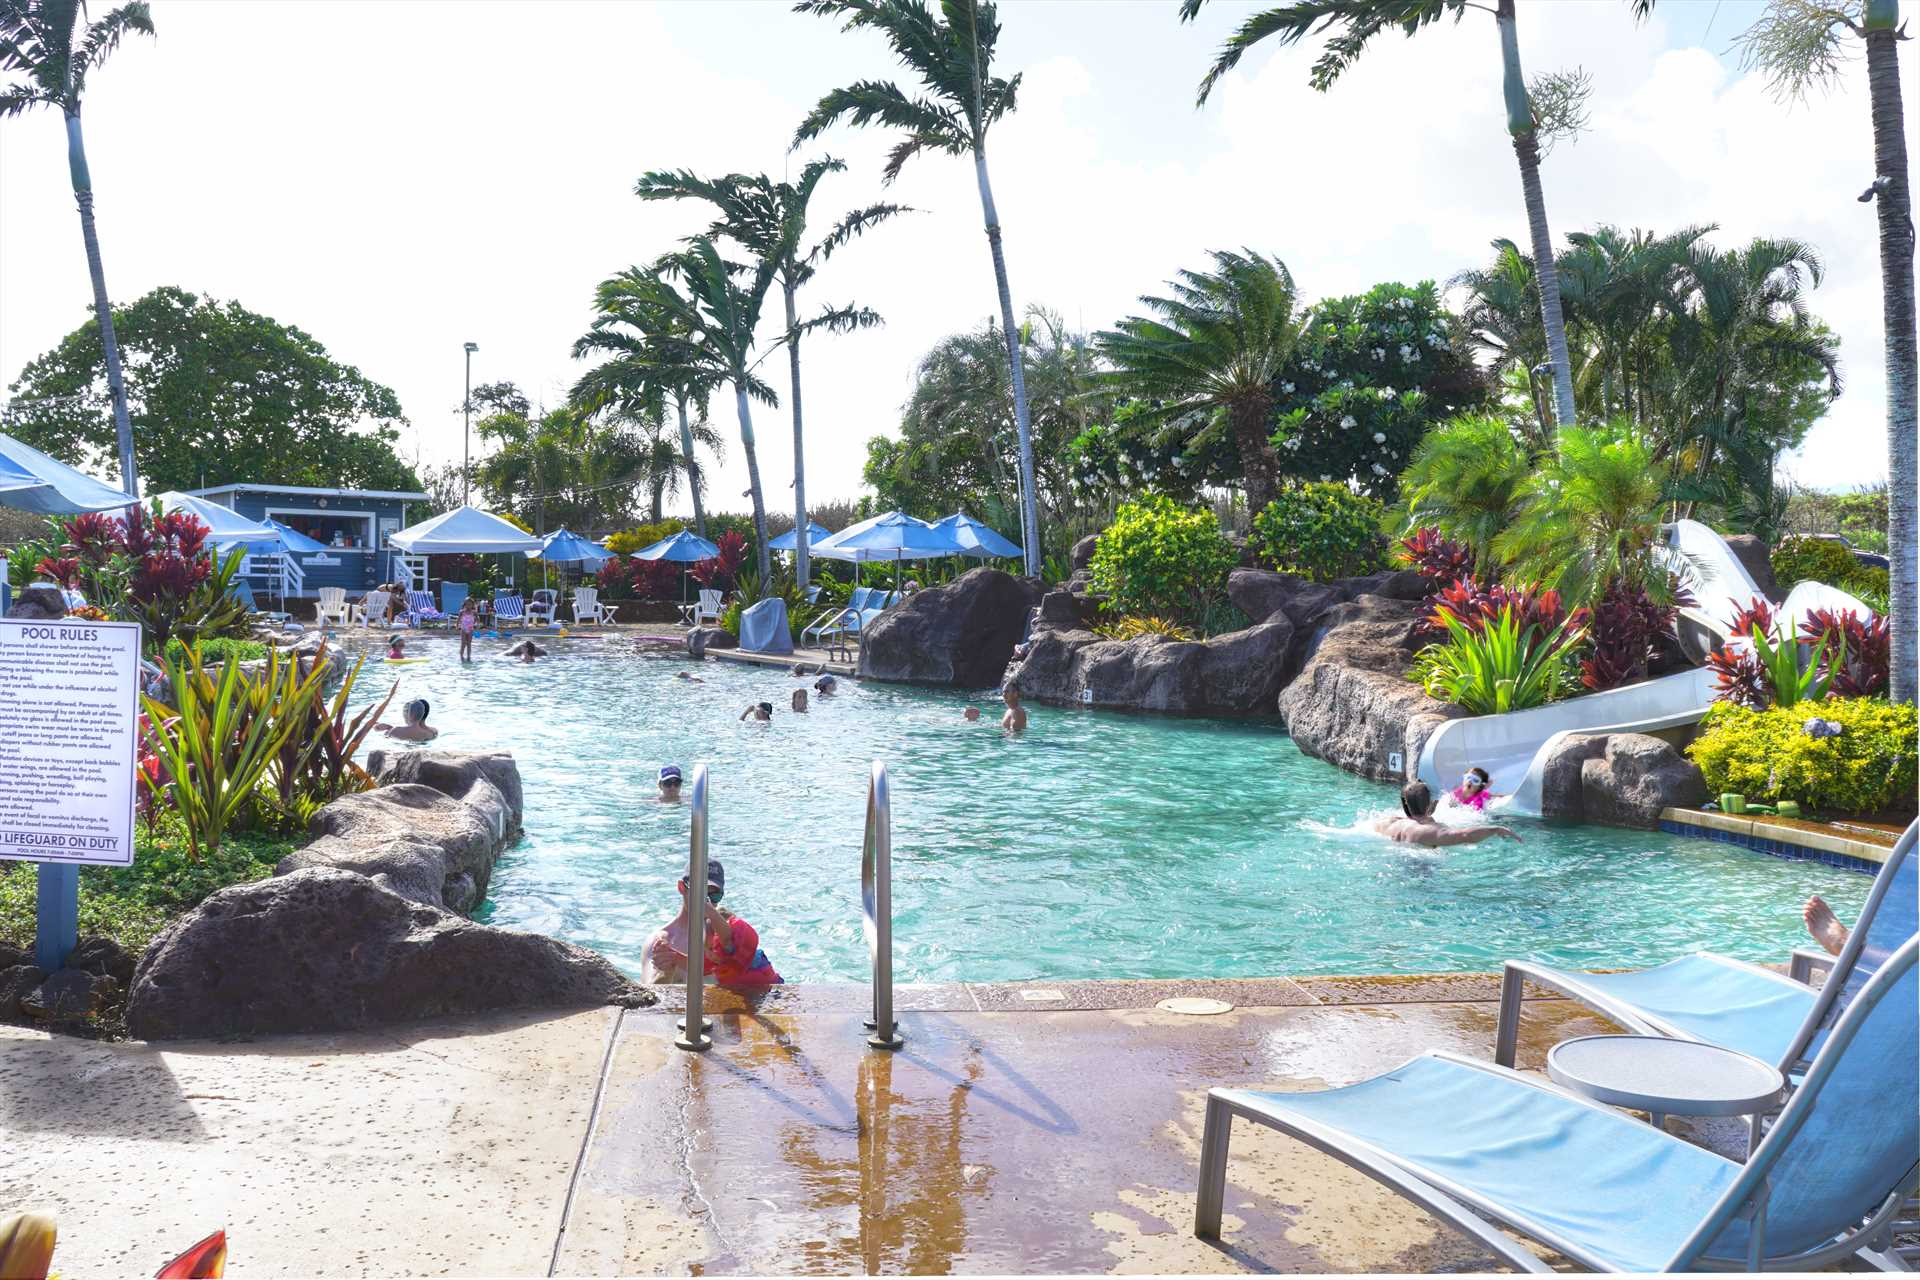 Pool/waterslide at Poipu Club, included with reservation